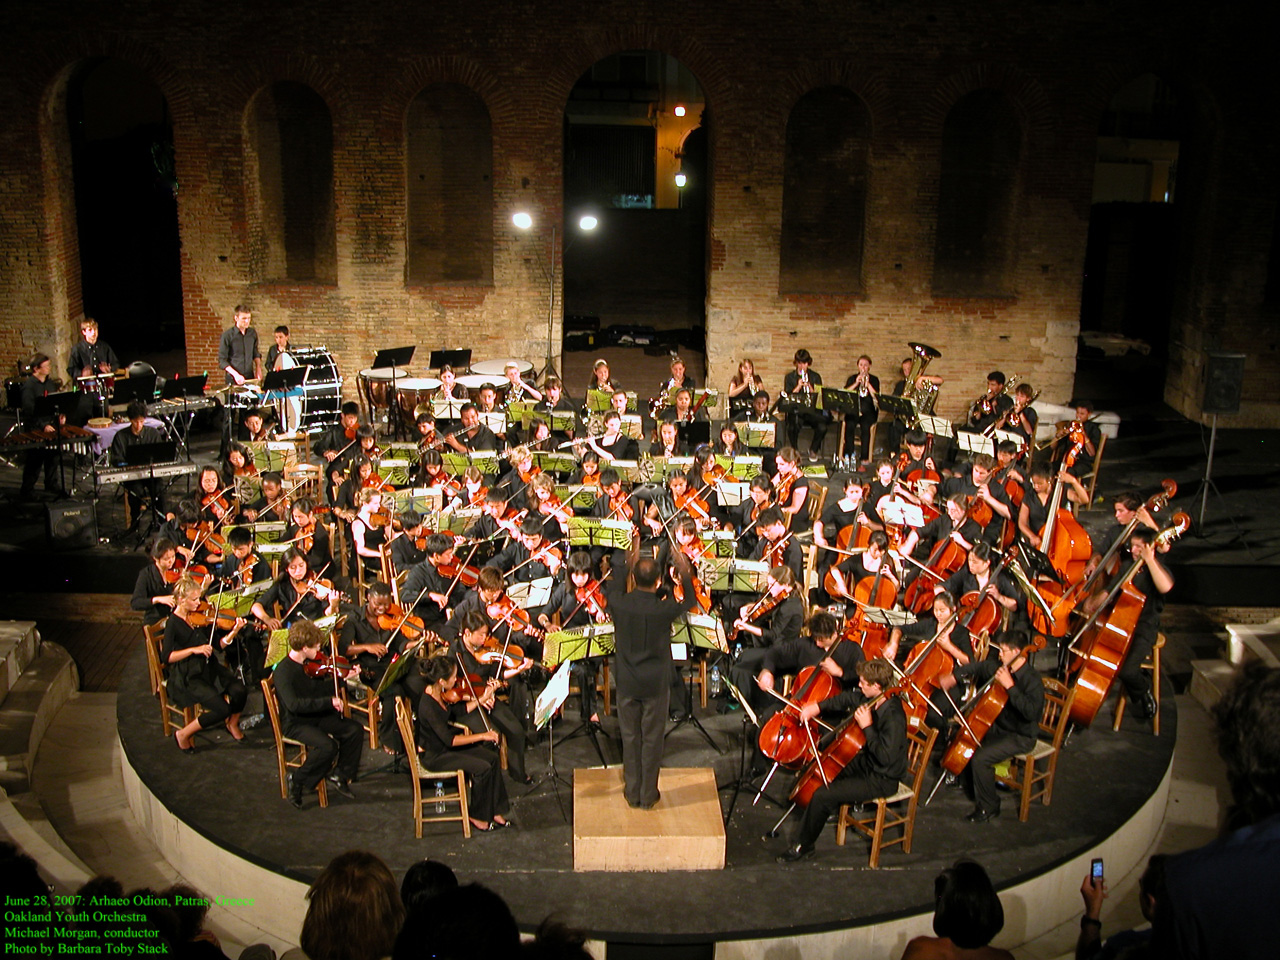 June 28, 2007: Patra, Greece: Oakland Youth Orchestra Concert